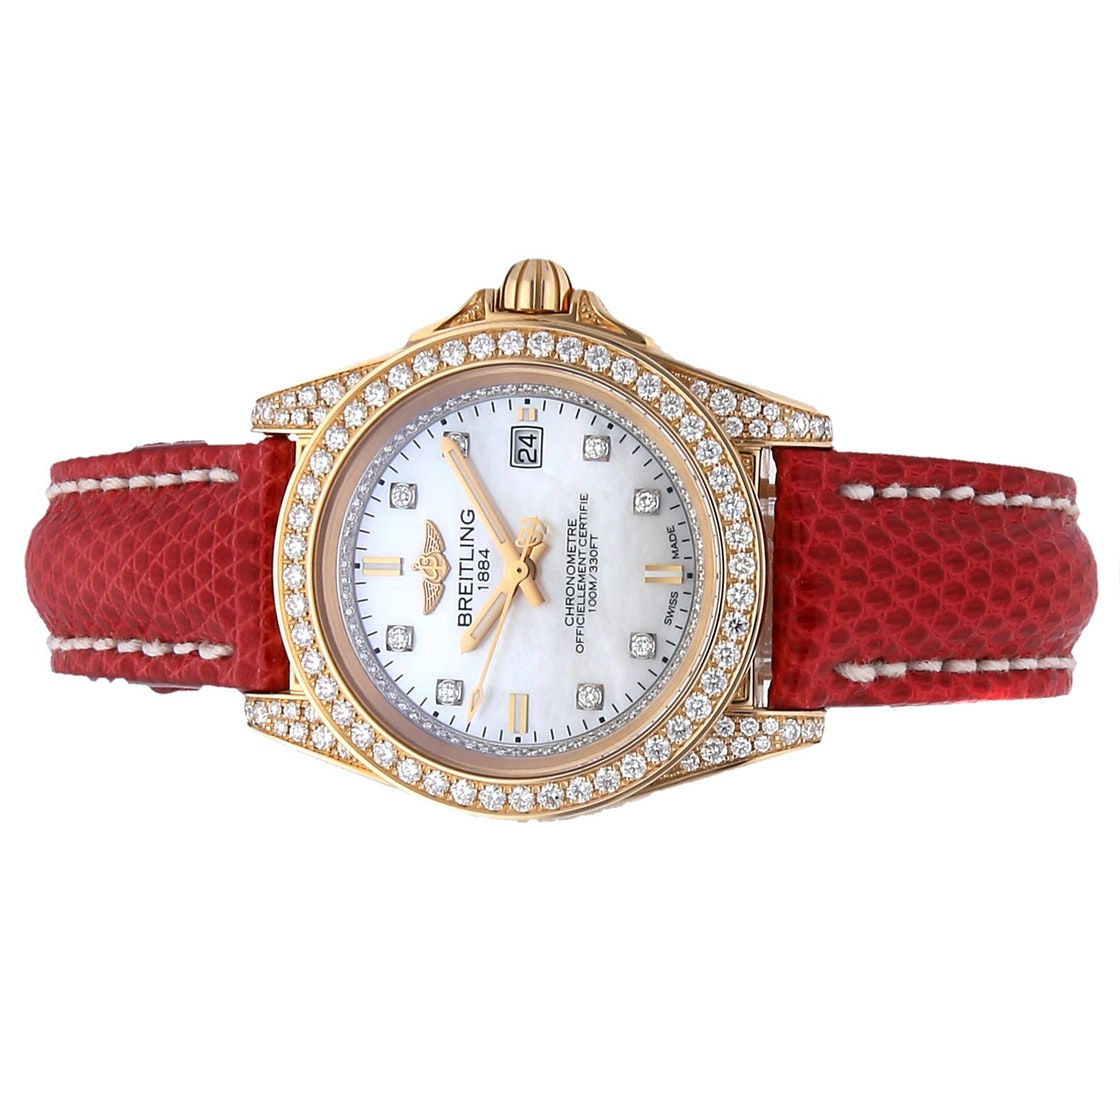 Breitling Galactic Sleek Edition Limited Edition H7133063/A804